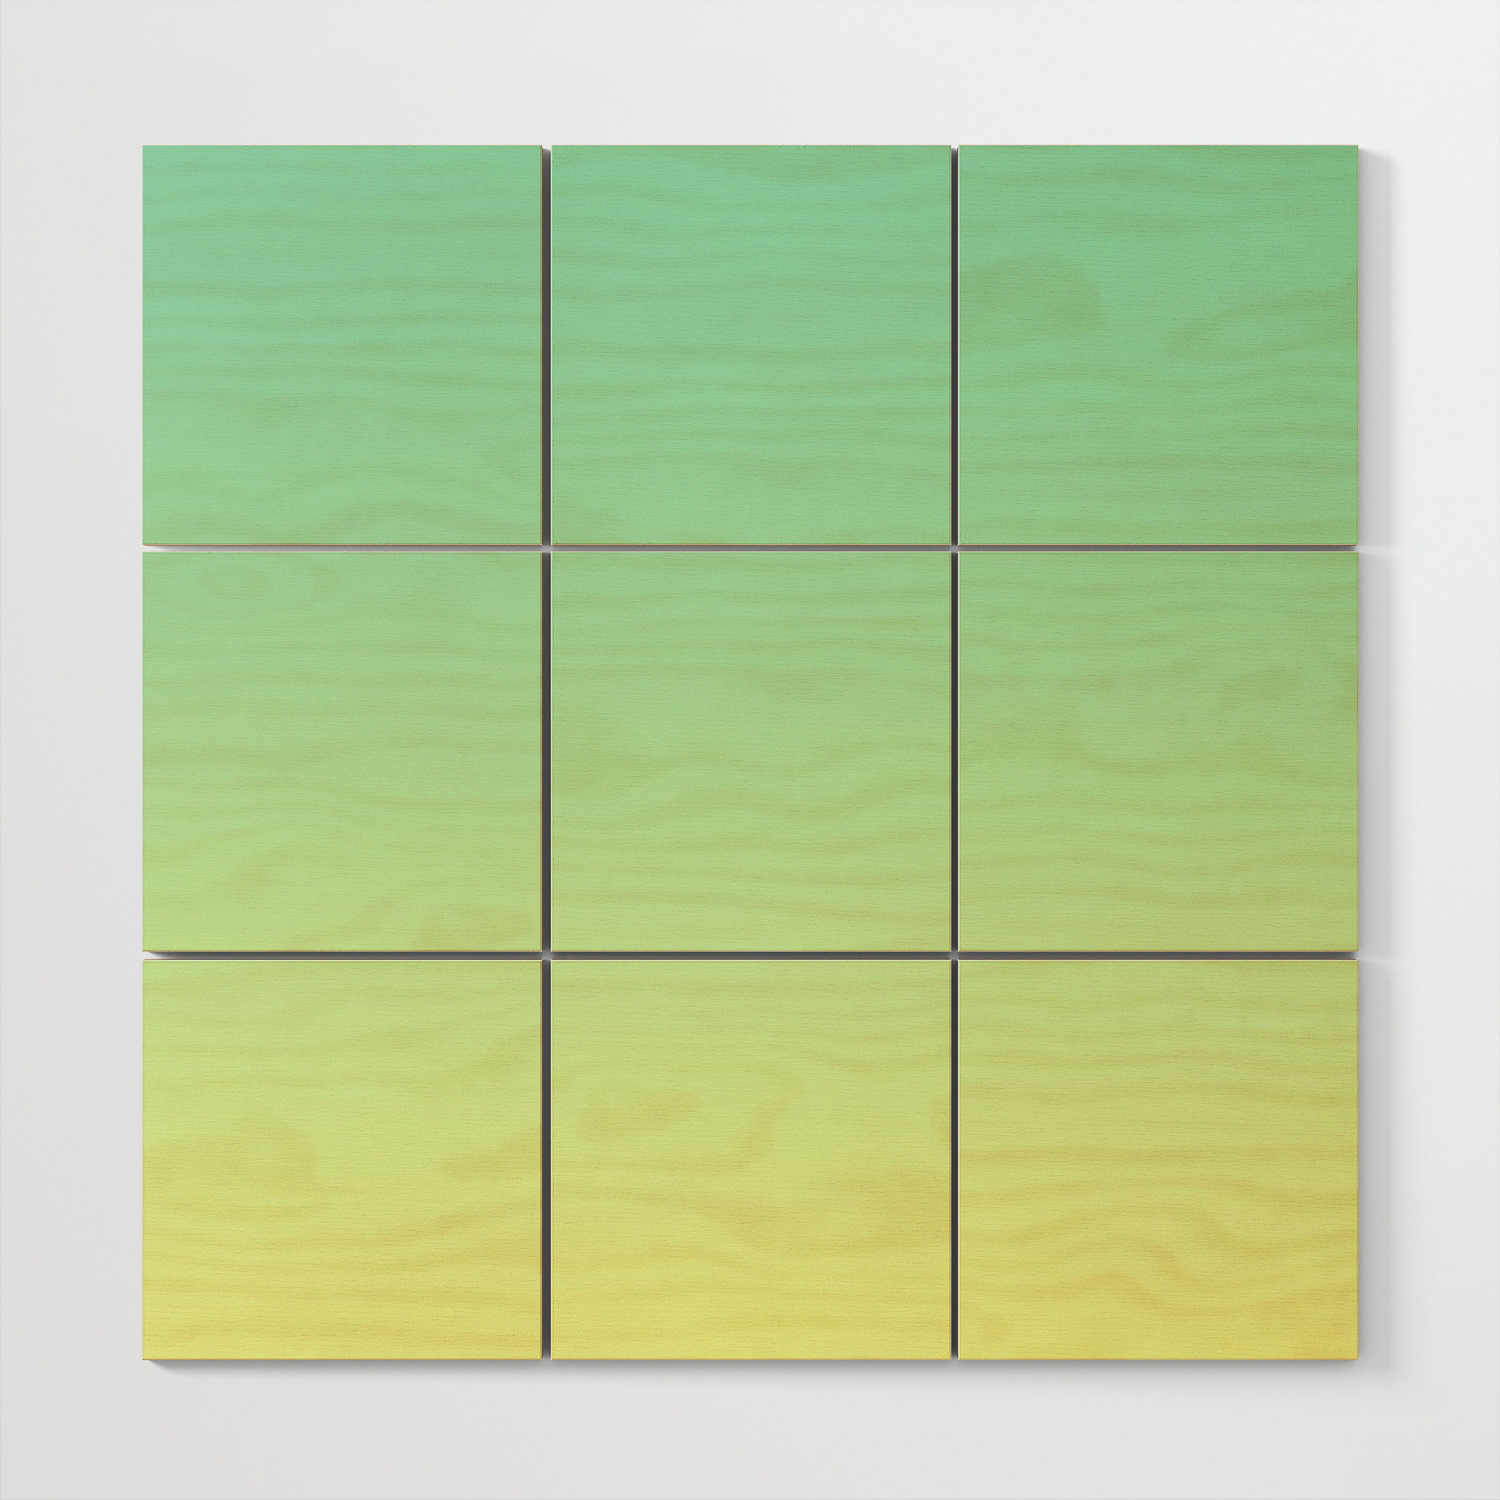 Lakethe Sea – Minimal Plain Soft Mood Color Blend Prints Wood Wall Art Burning Intended For Widely Used Blended Fabric Lago Di Como Ii Wall Hangings (View 12 of 20)